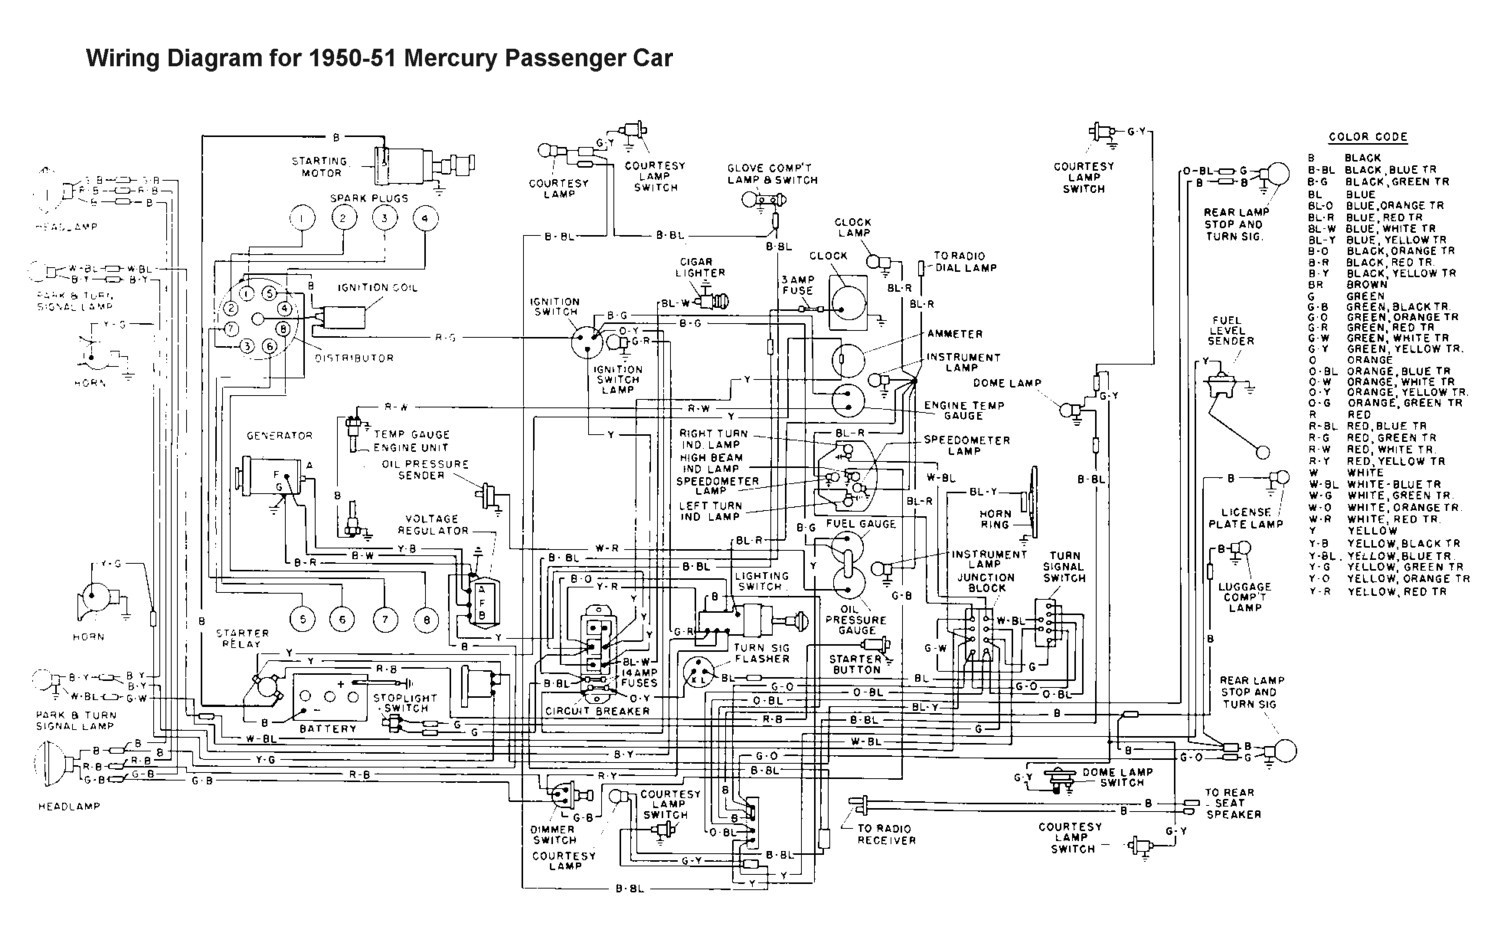 Flathead Electrical Wiring Diagrams 12 V Diagram For 1950 51 Mercury Car